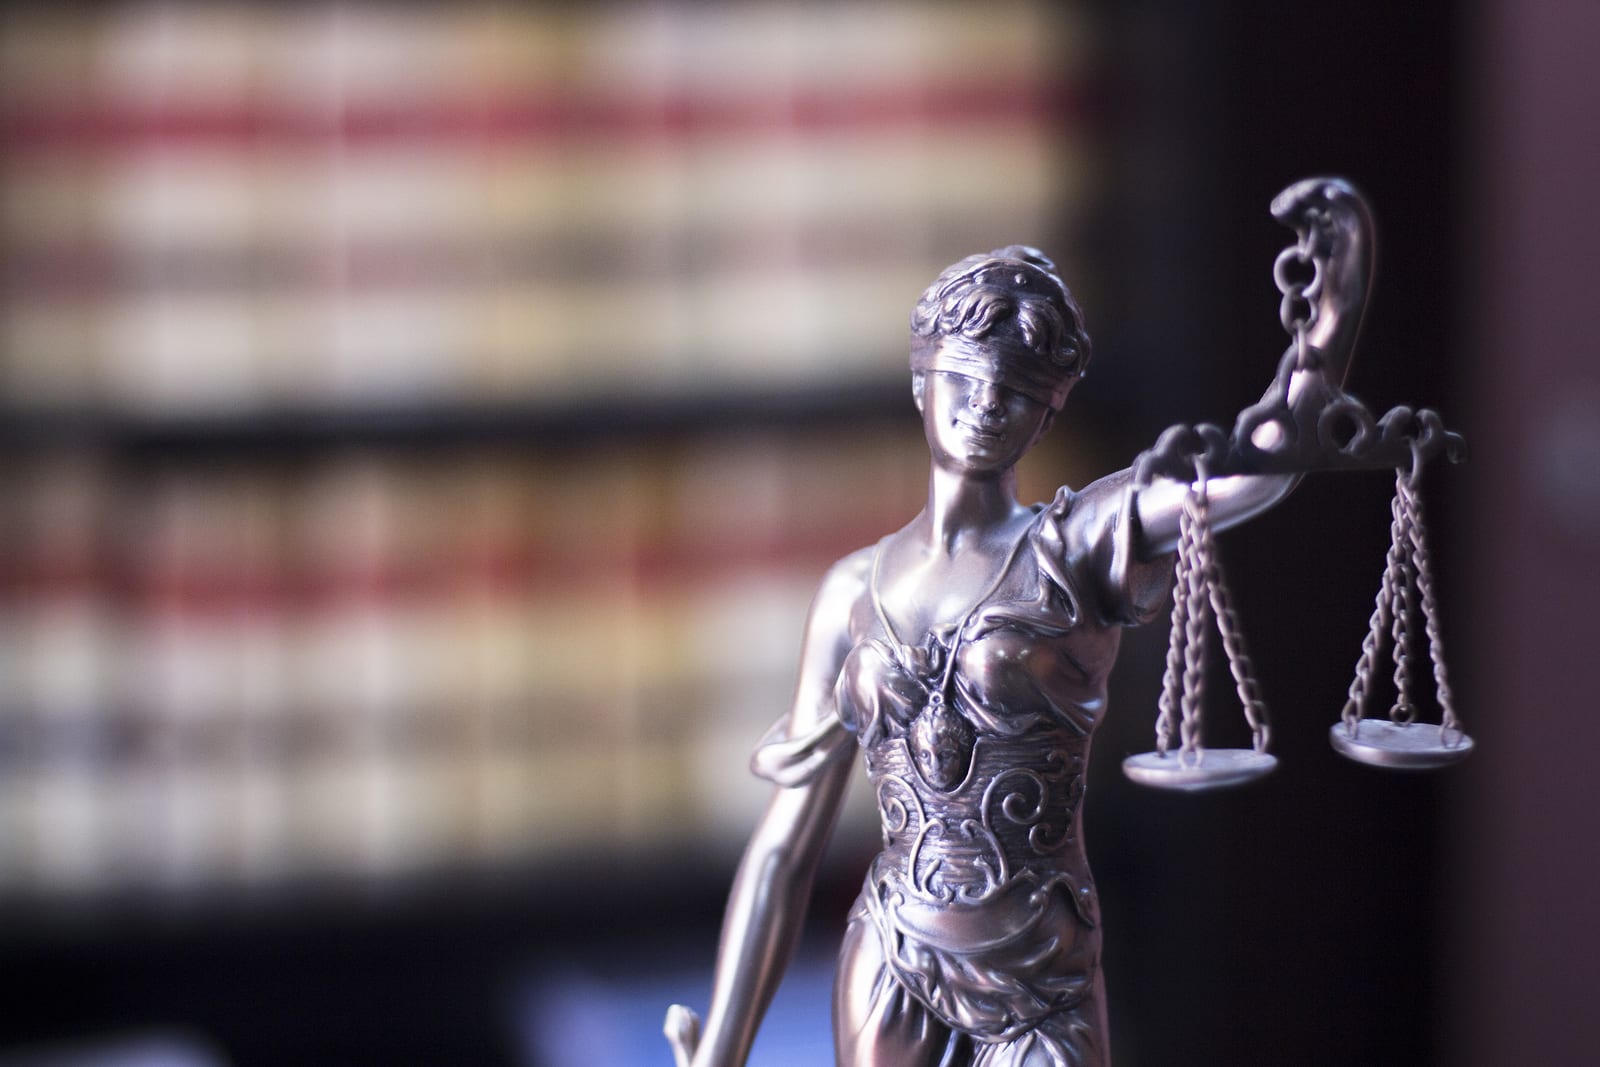 Louisiana News: Broussard woman, Derlena Carrier sentenced to 2 years for stealing nearly $275,000 from bank customer accounts